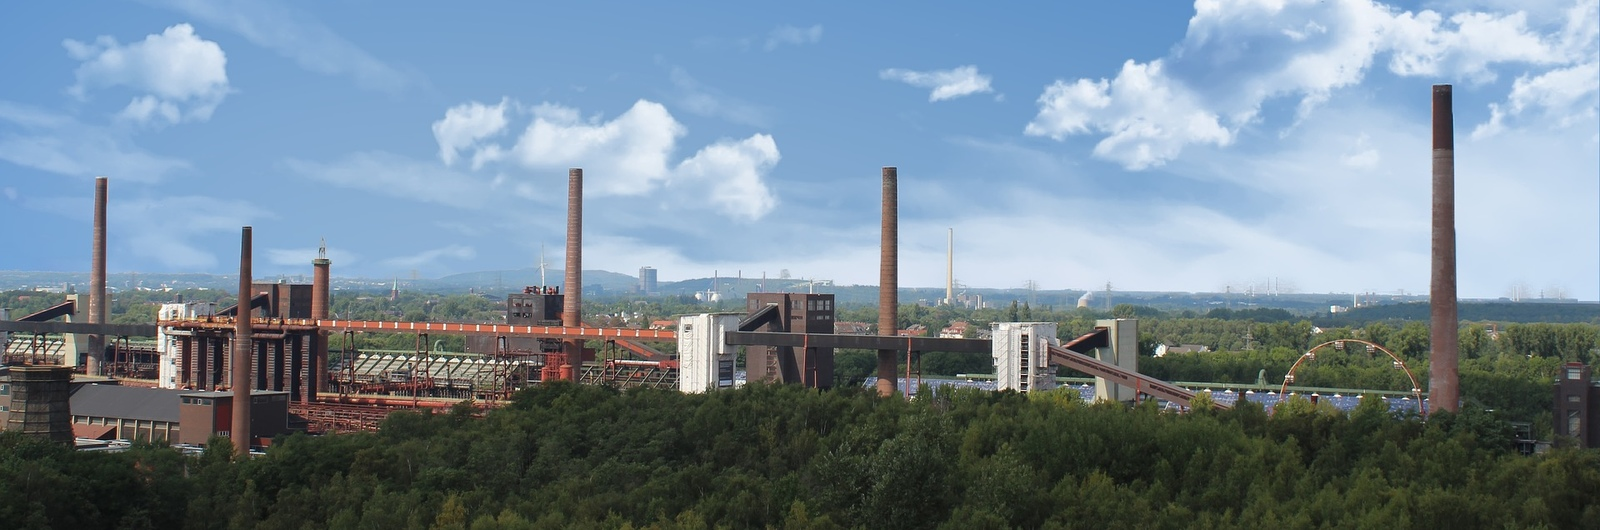 essen city header